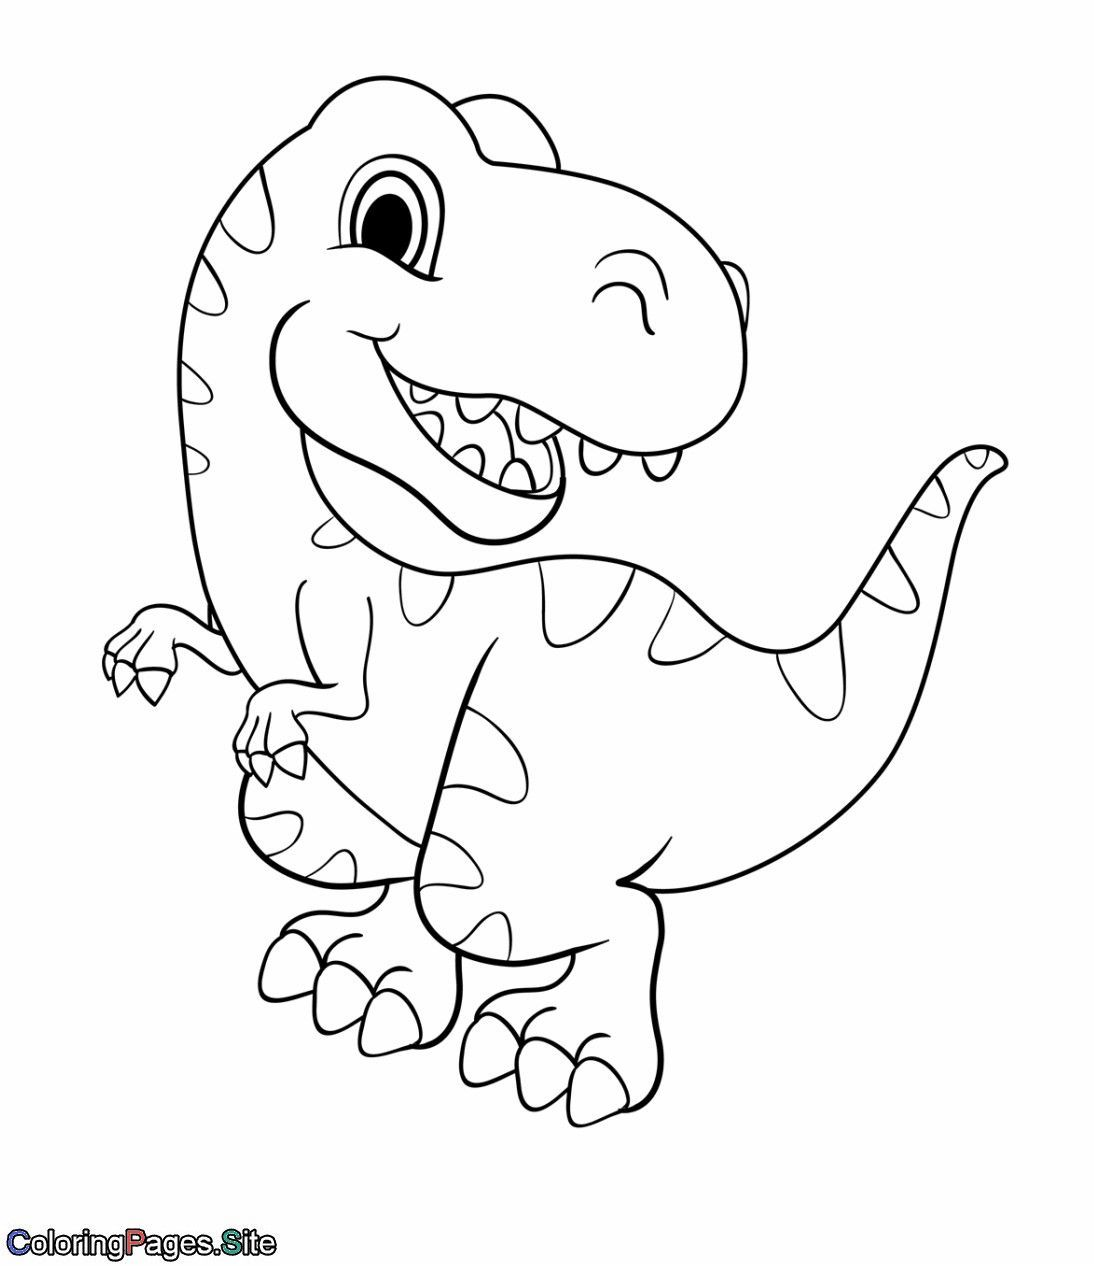 Dinosaur Coloring Pages Cute Cartoon Dinosaur Coloring Page Free